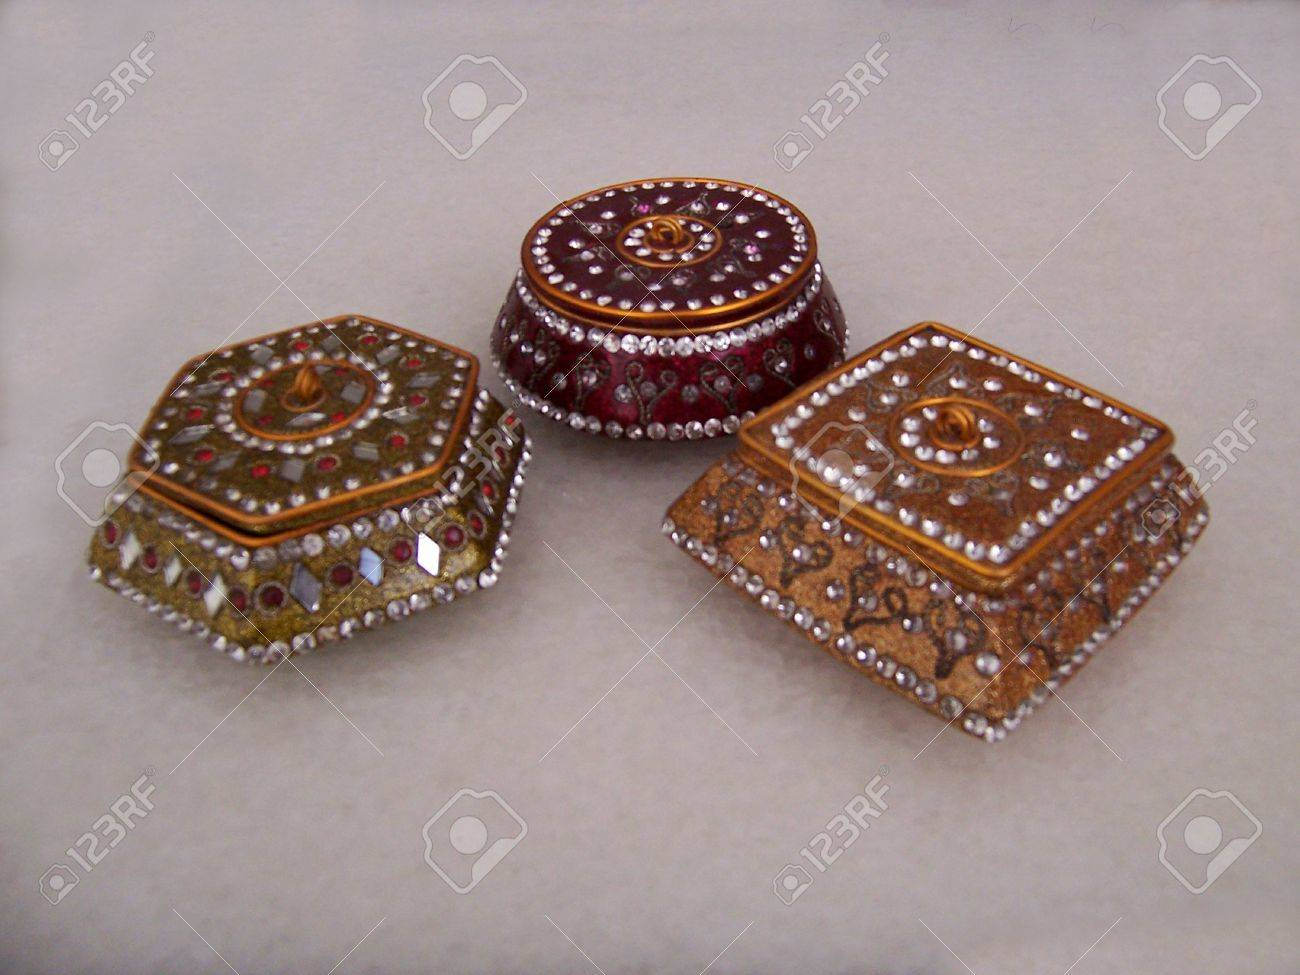 Decorative Metallic Glitter Gift Or Jewelry Boxes Indian Style